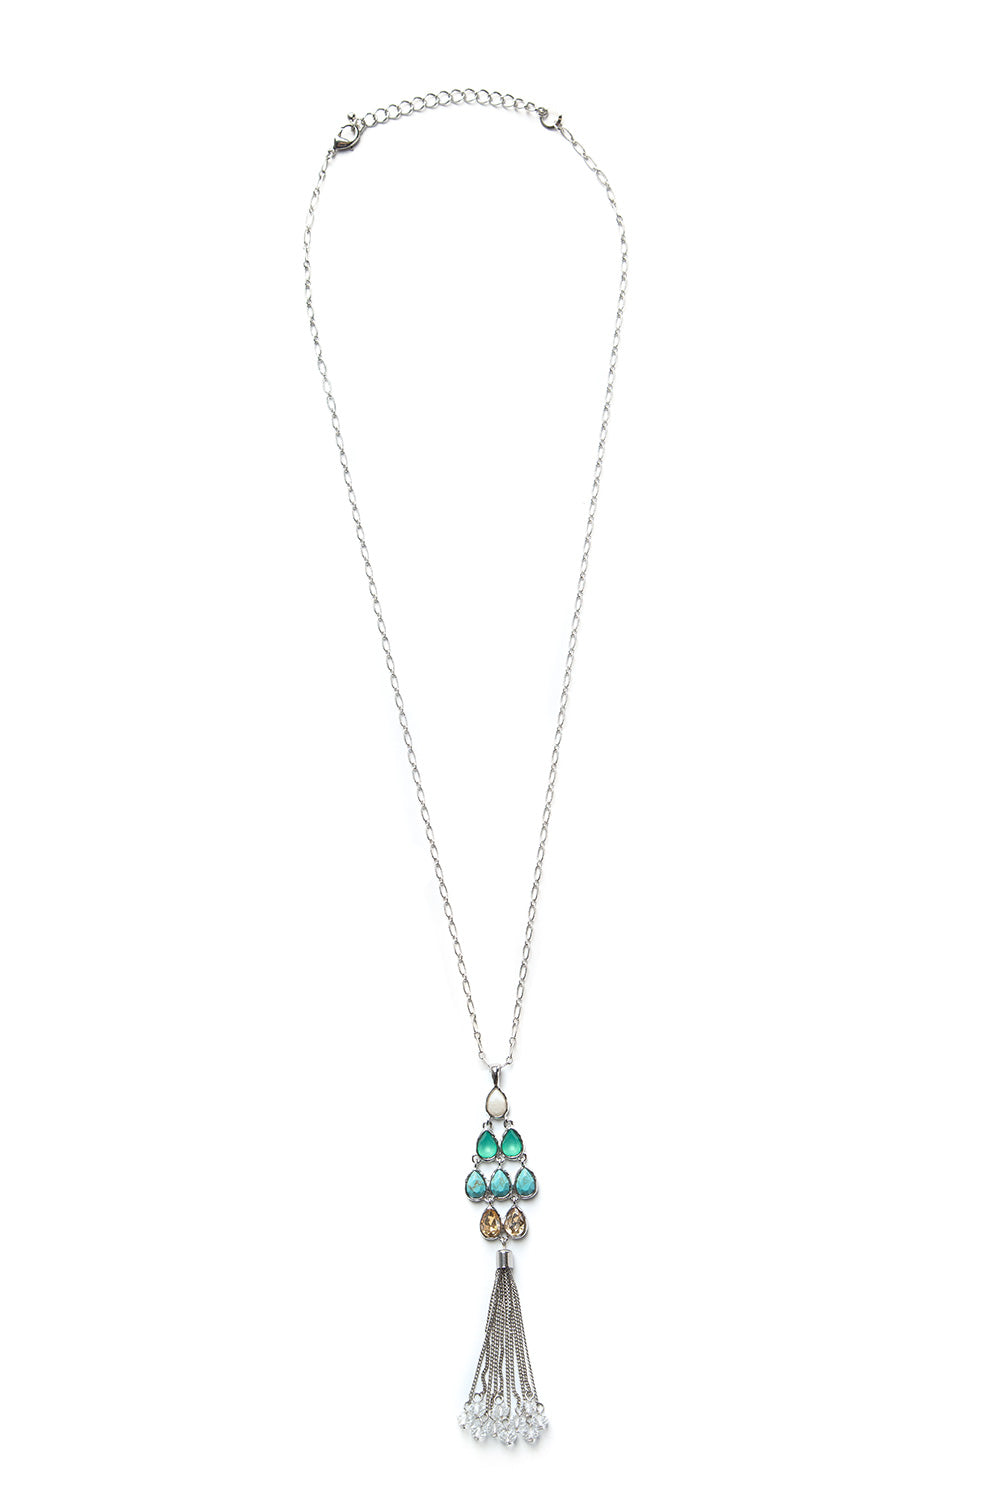 Type 2 Teal It Rains Necklace